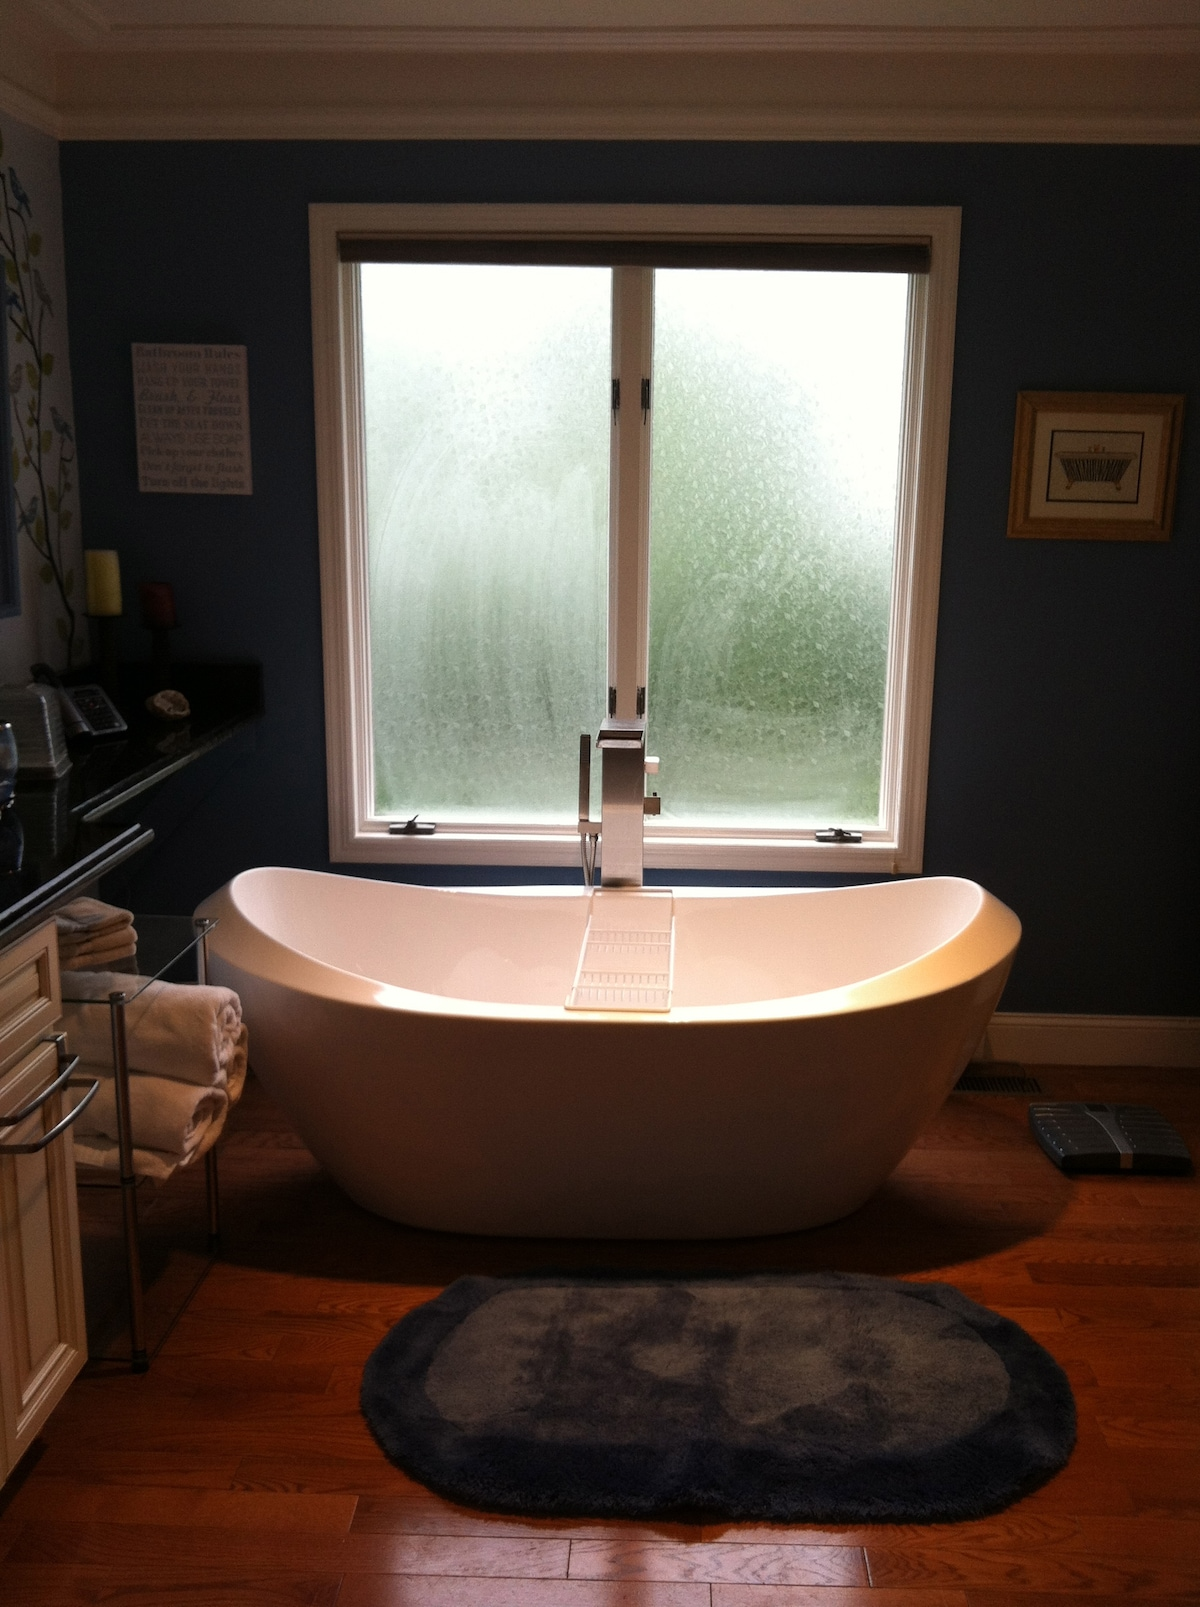 Relax and unwind after a long day! (Privacy Glass Window & blinds for Complete Privacy)